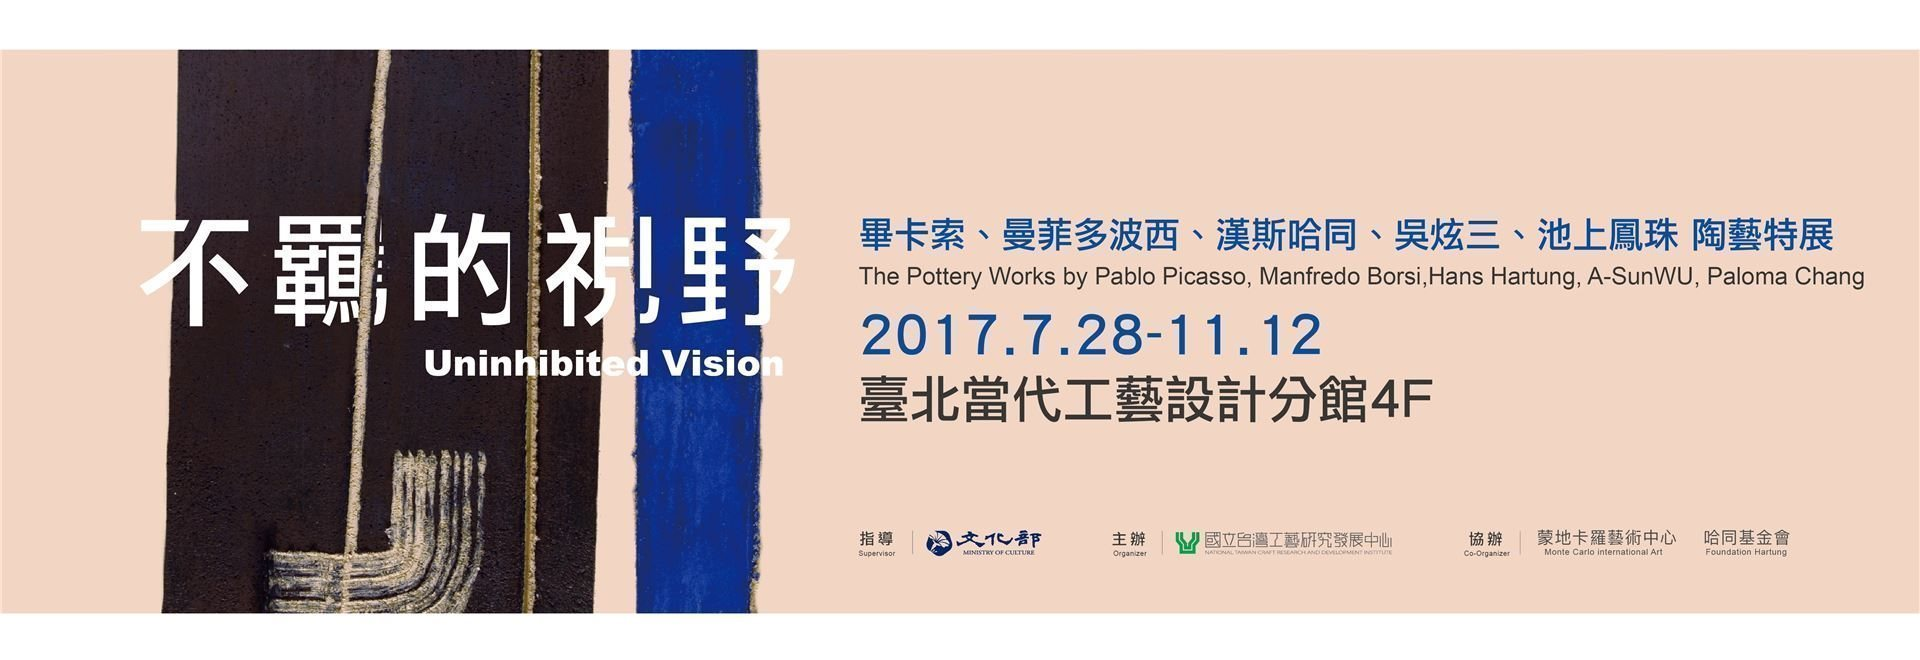 Uninhibited Vision – The Pottery Works by Pablo Picasso, Manfredo Borsi, Hans Hartung, A-SunWU, Paloma CHANG[另開新視窗]